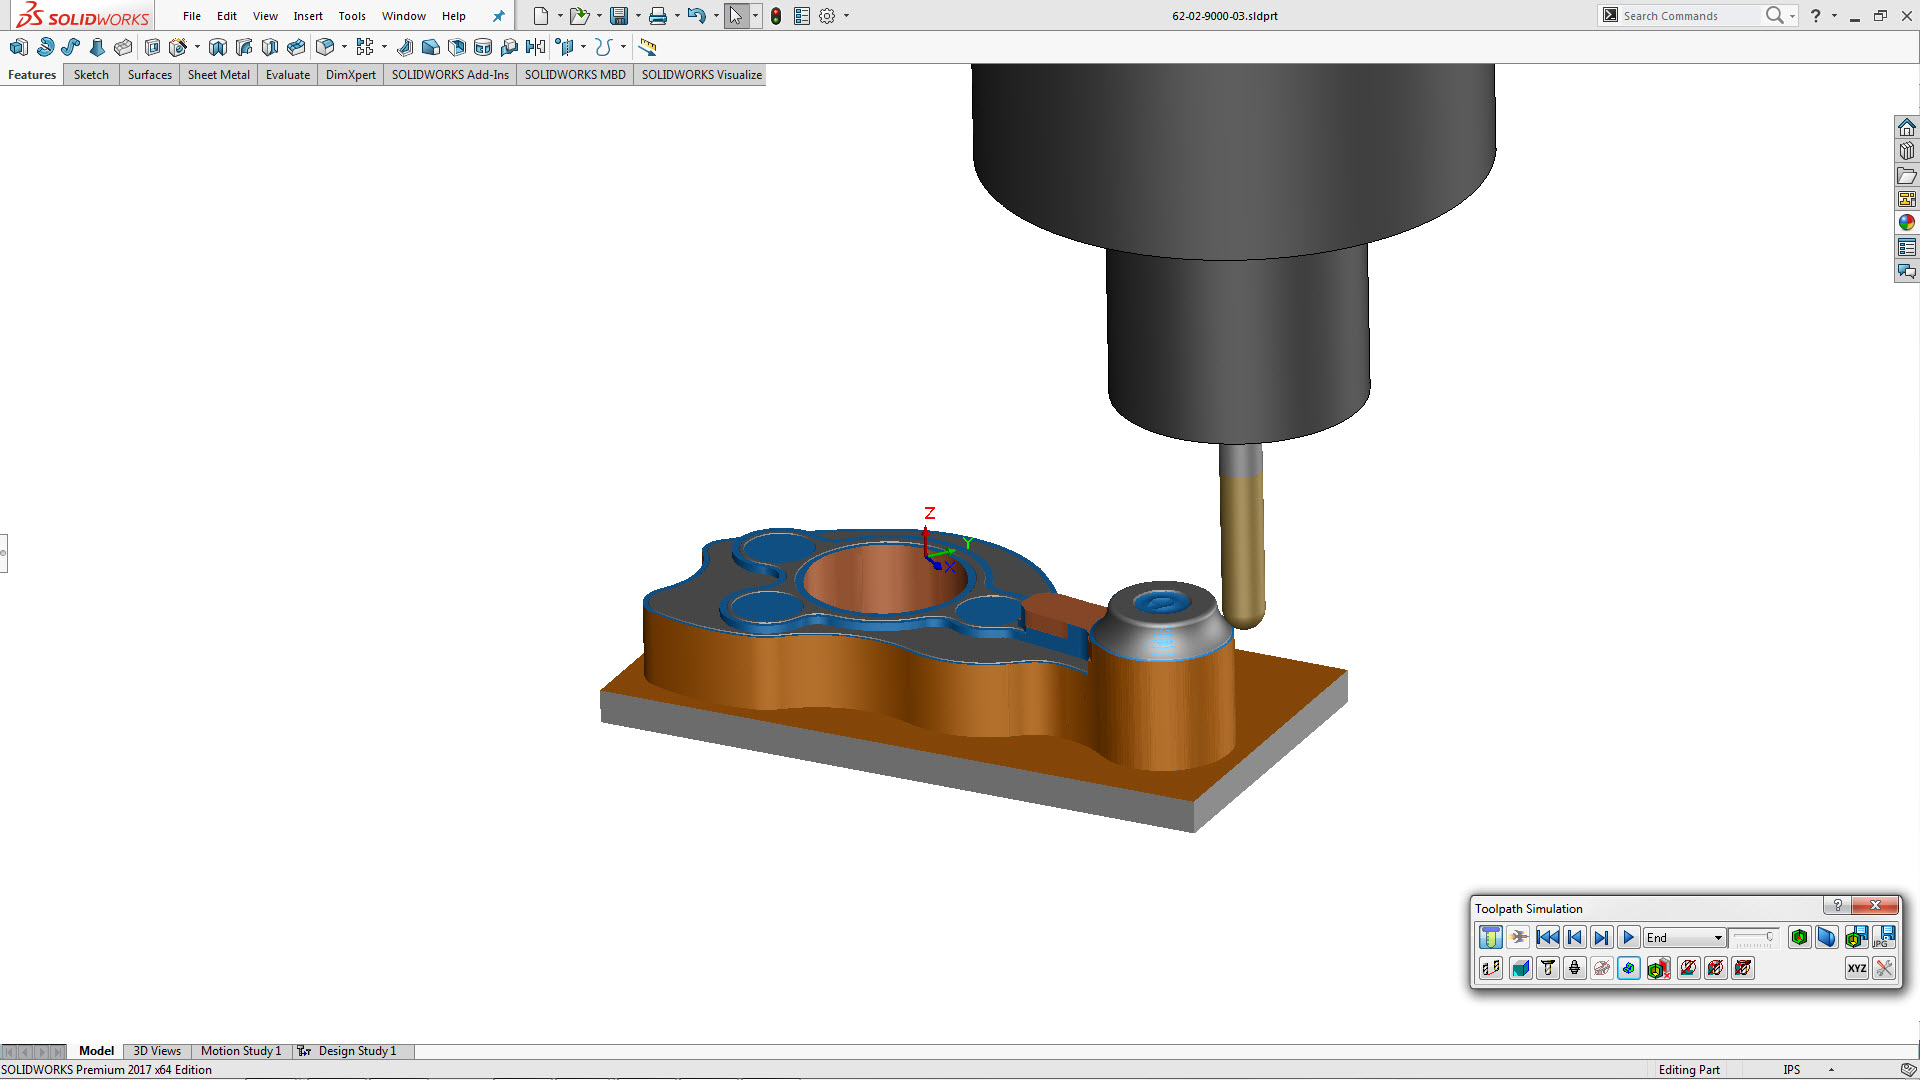 Introducing Solidworks Cam A Smart Manufacturing Ecosystem